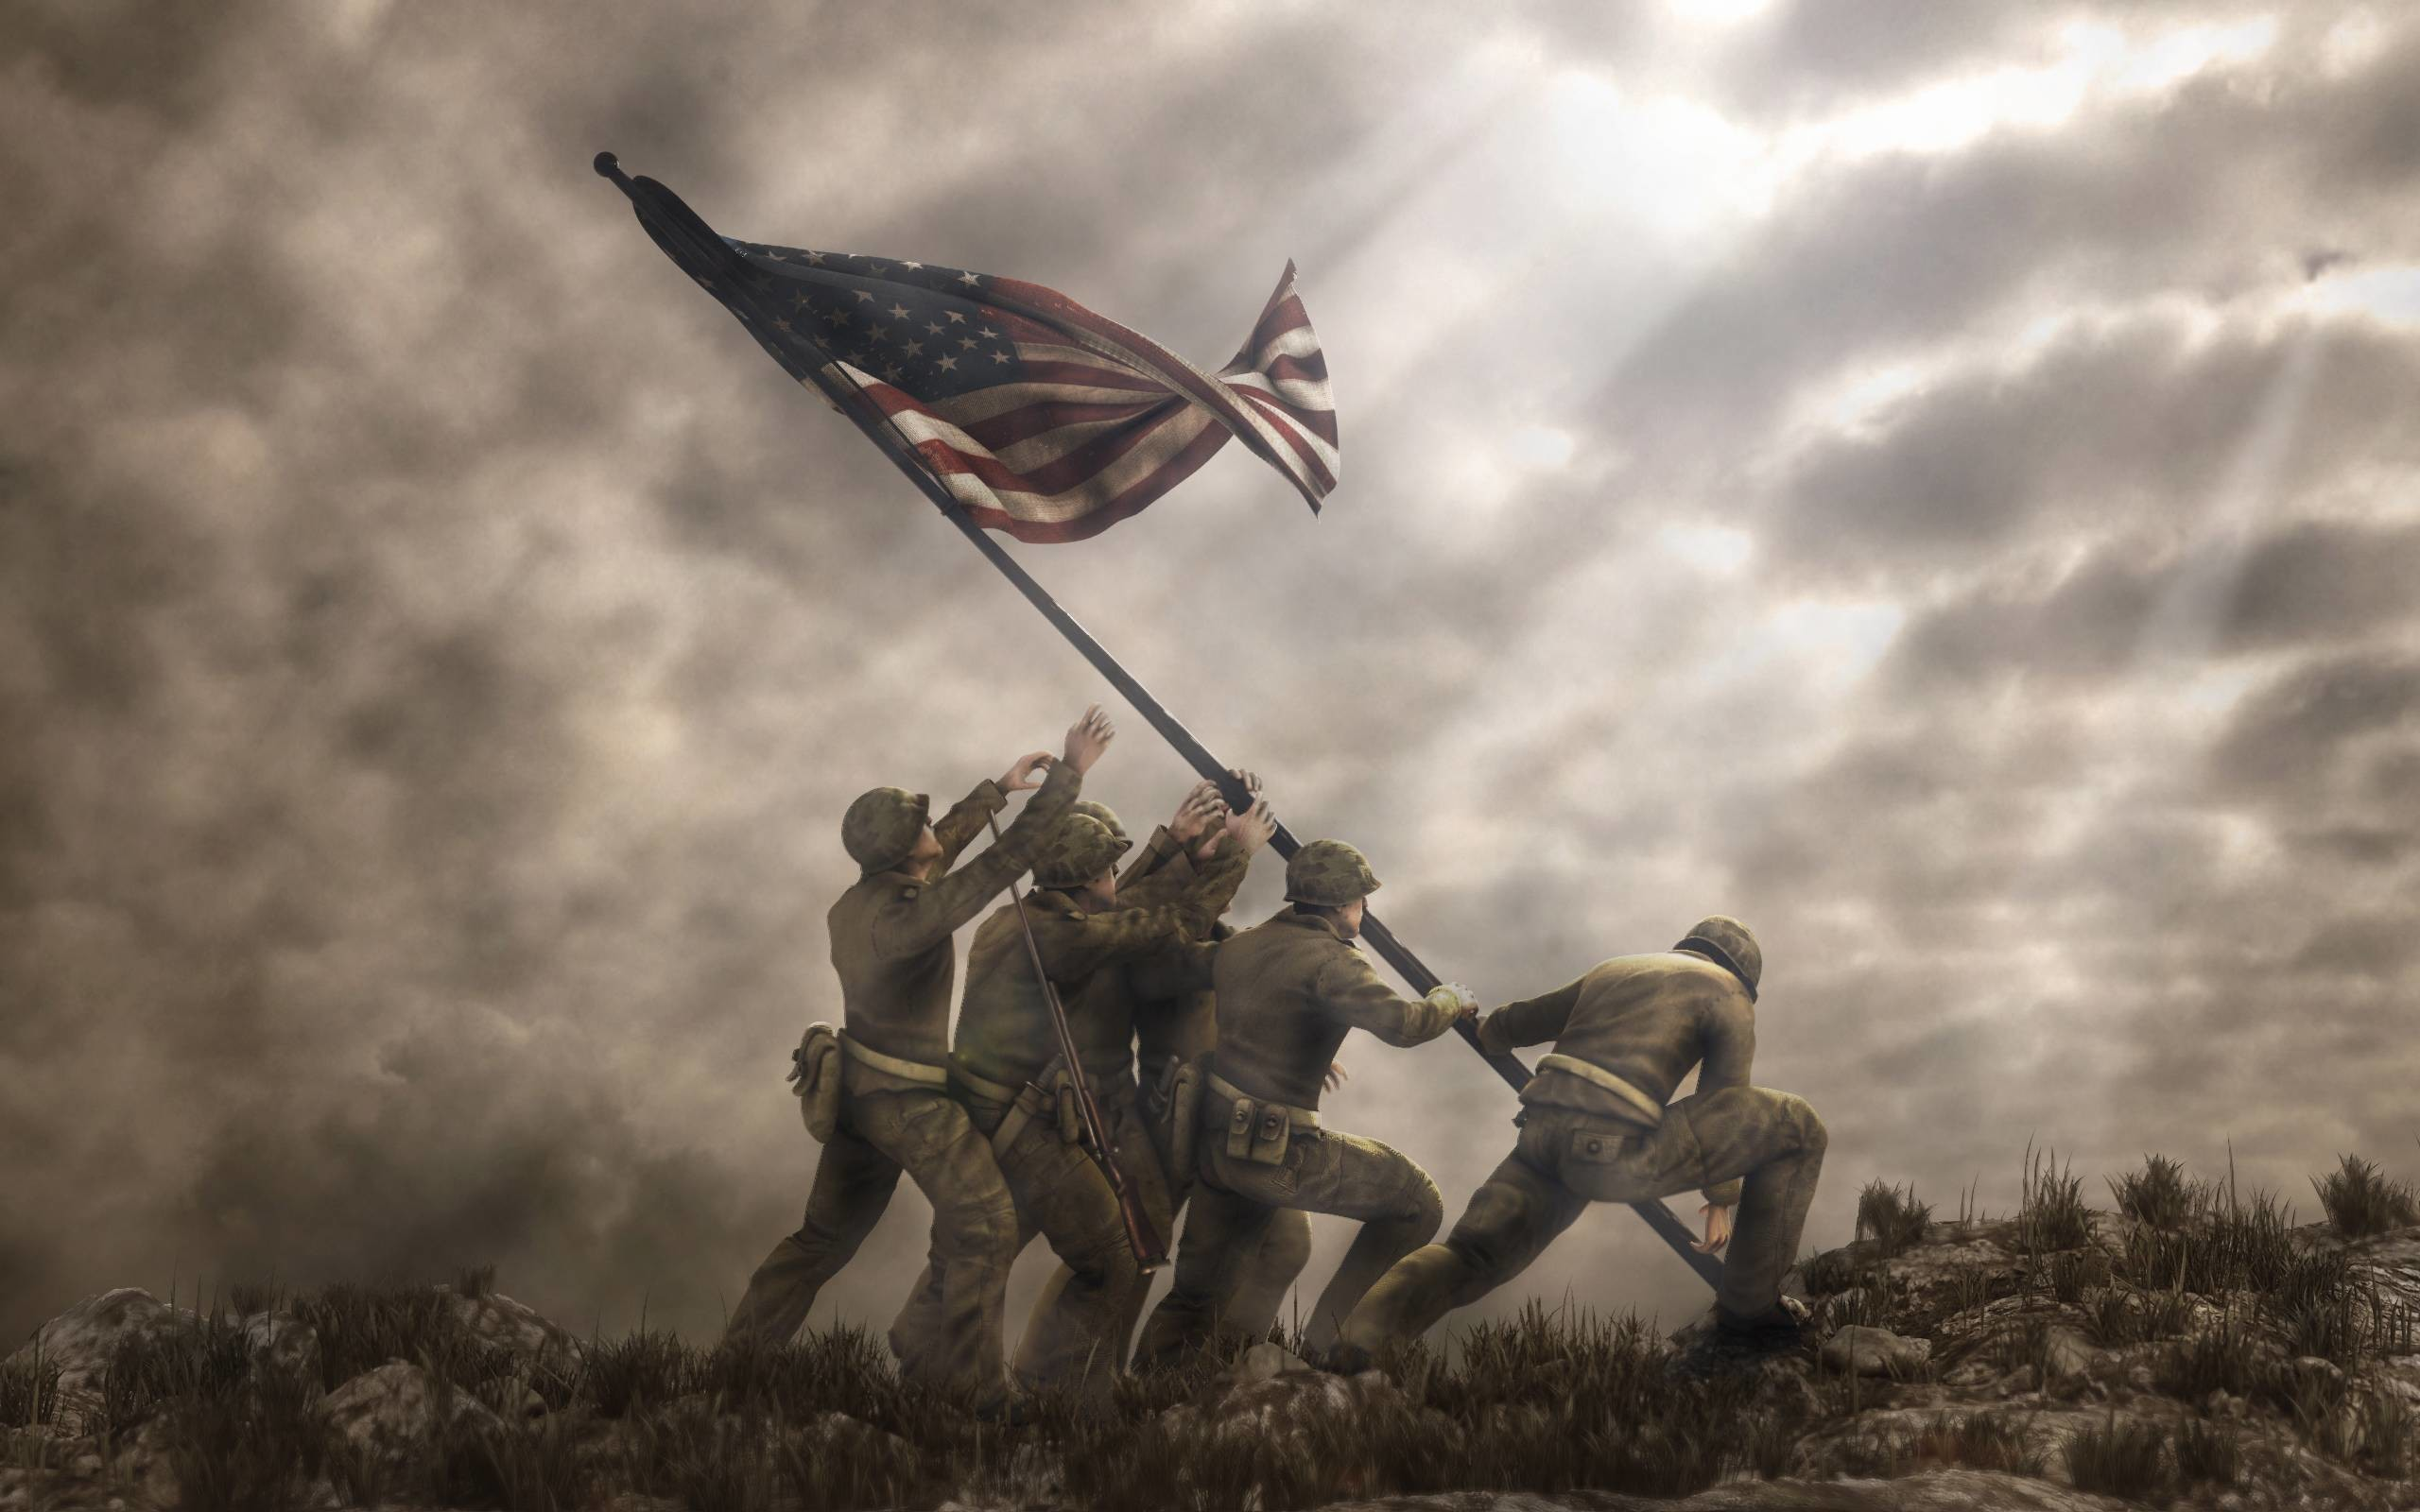 2560x1600 Iwo Jima Flag Raising Wallpapers - Wallpaper Cave